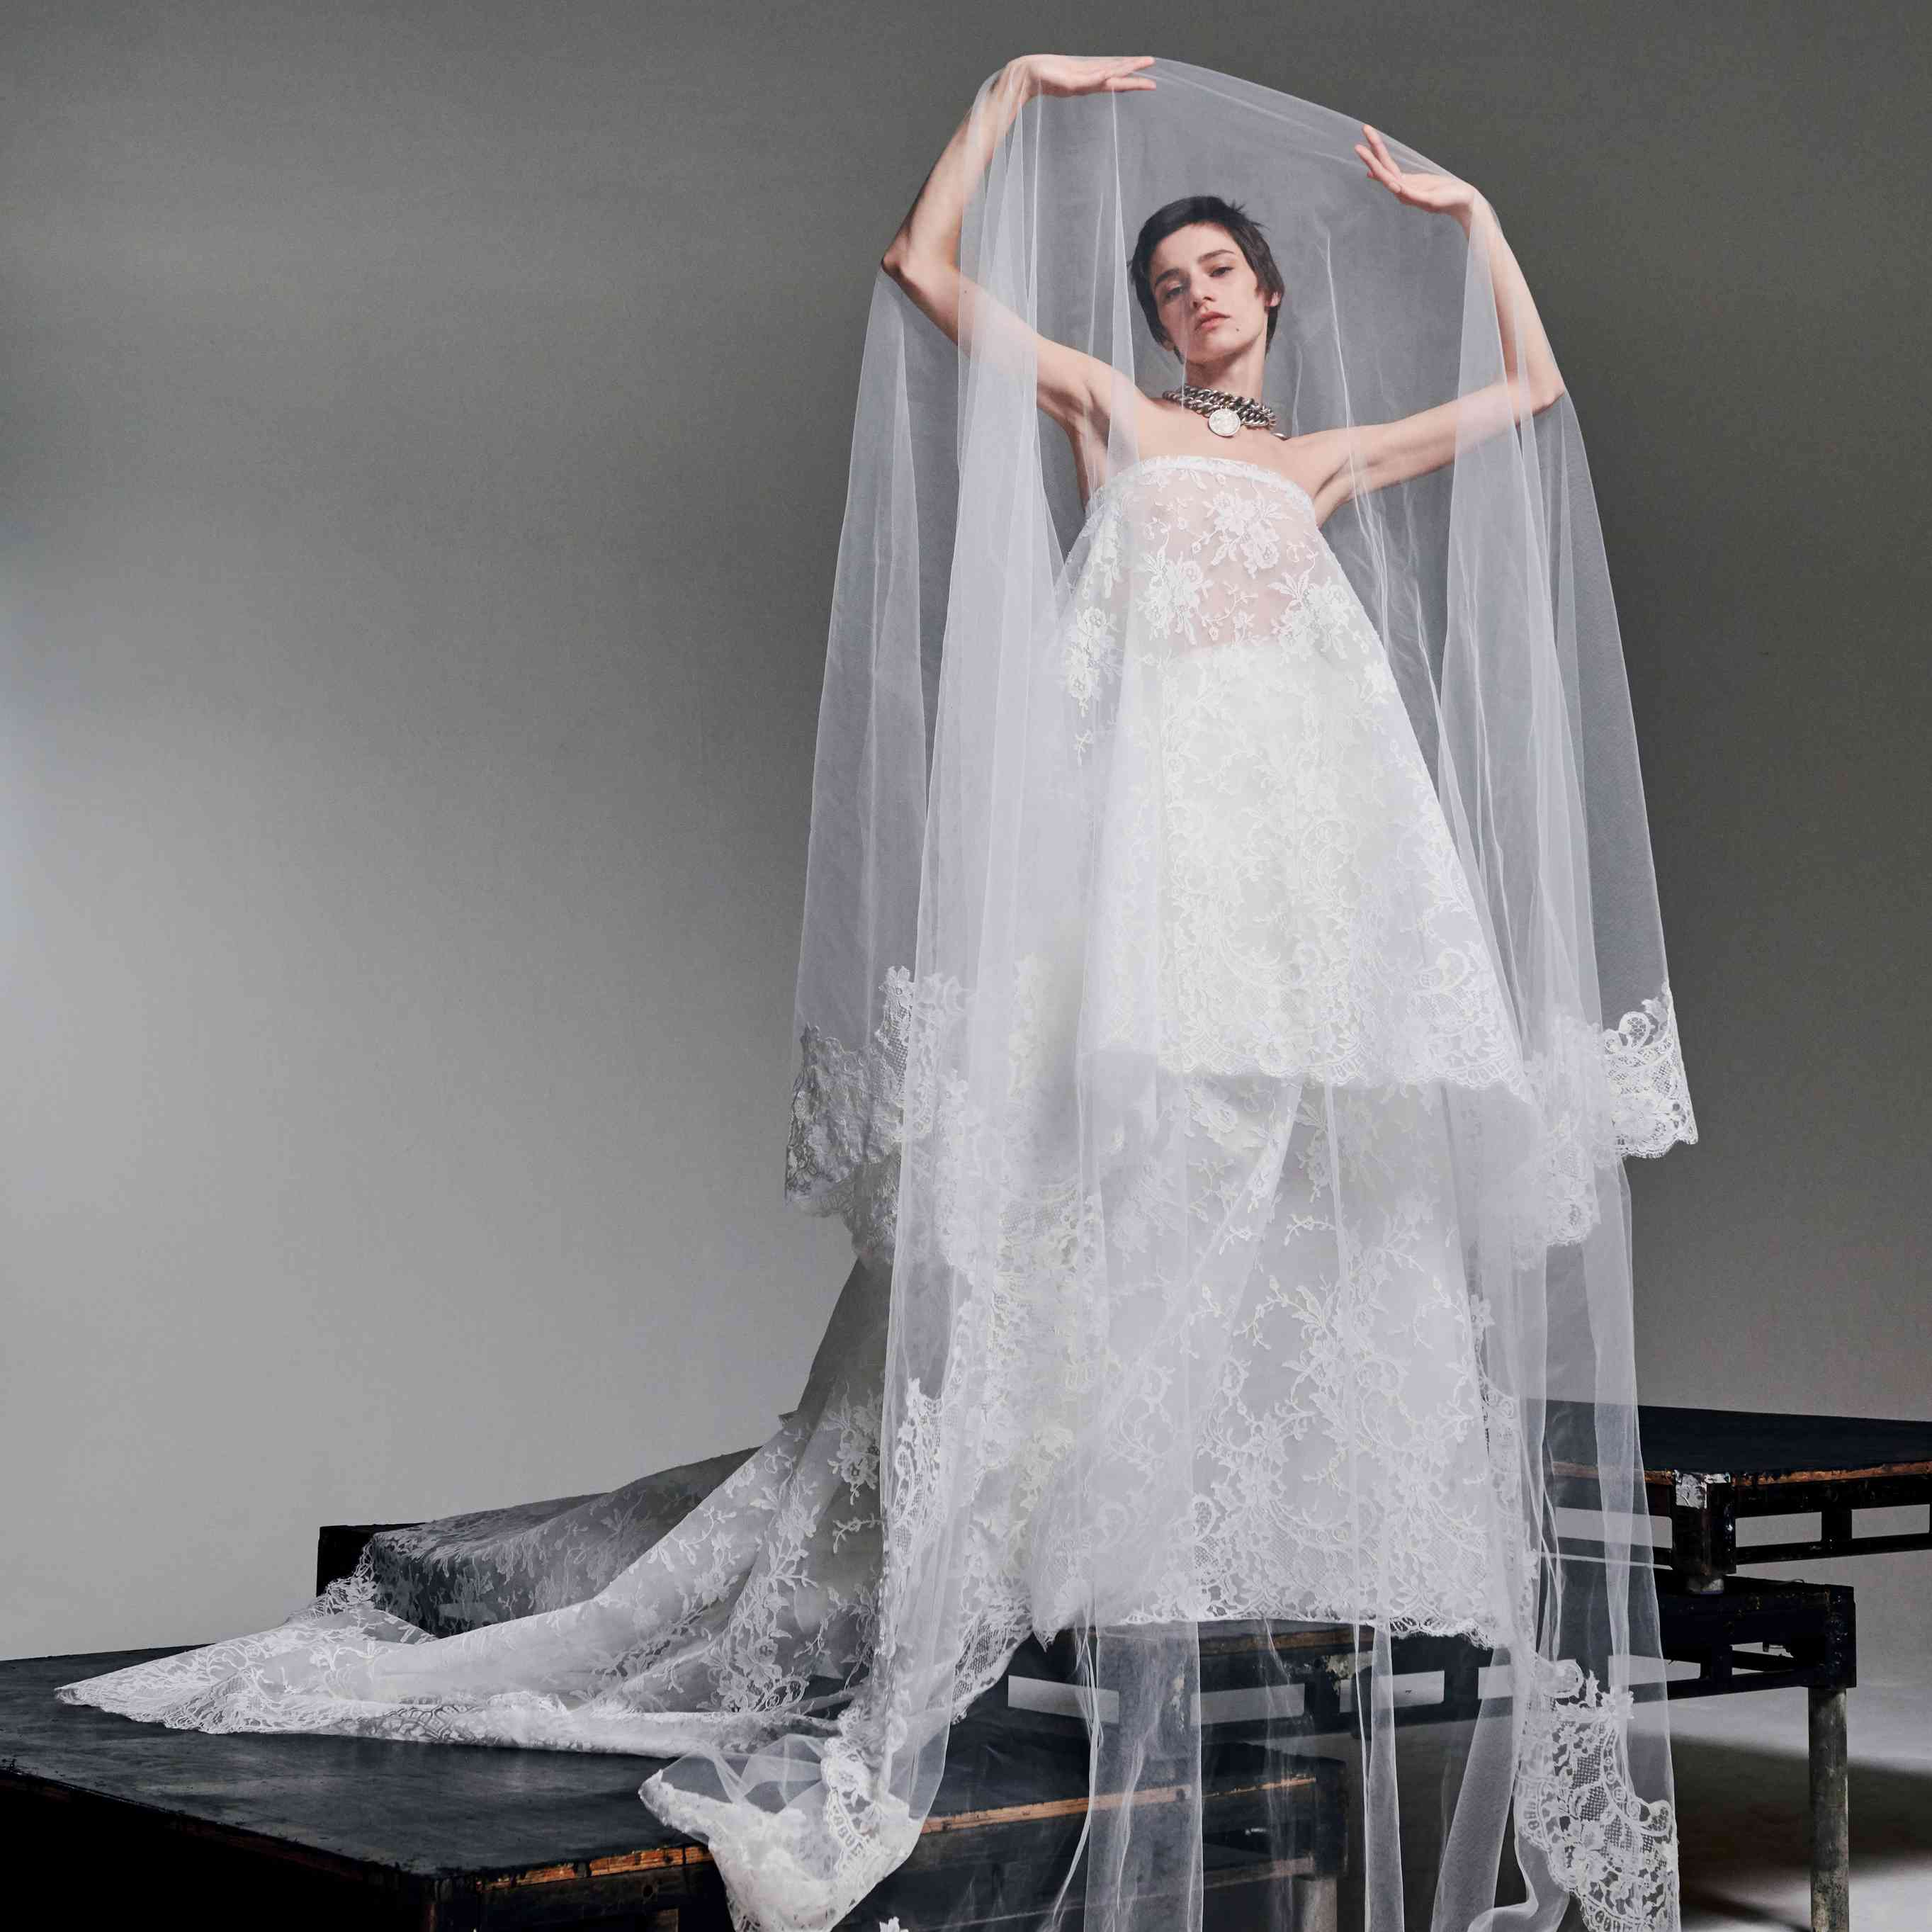 Model in strapless lace gown with large veil